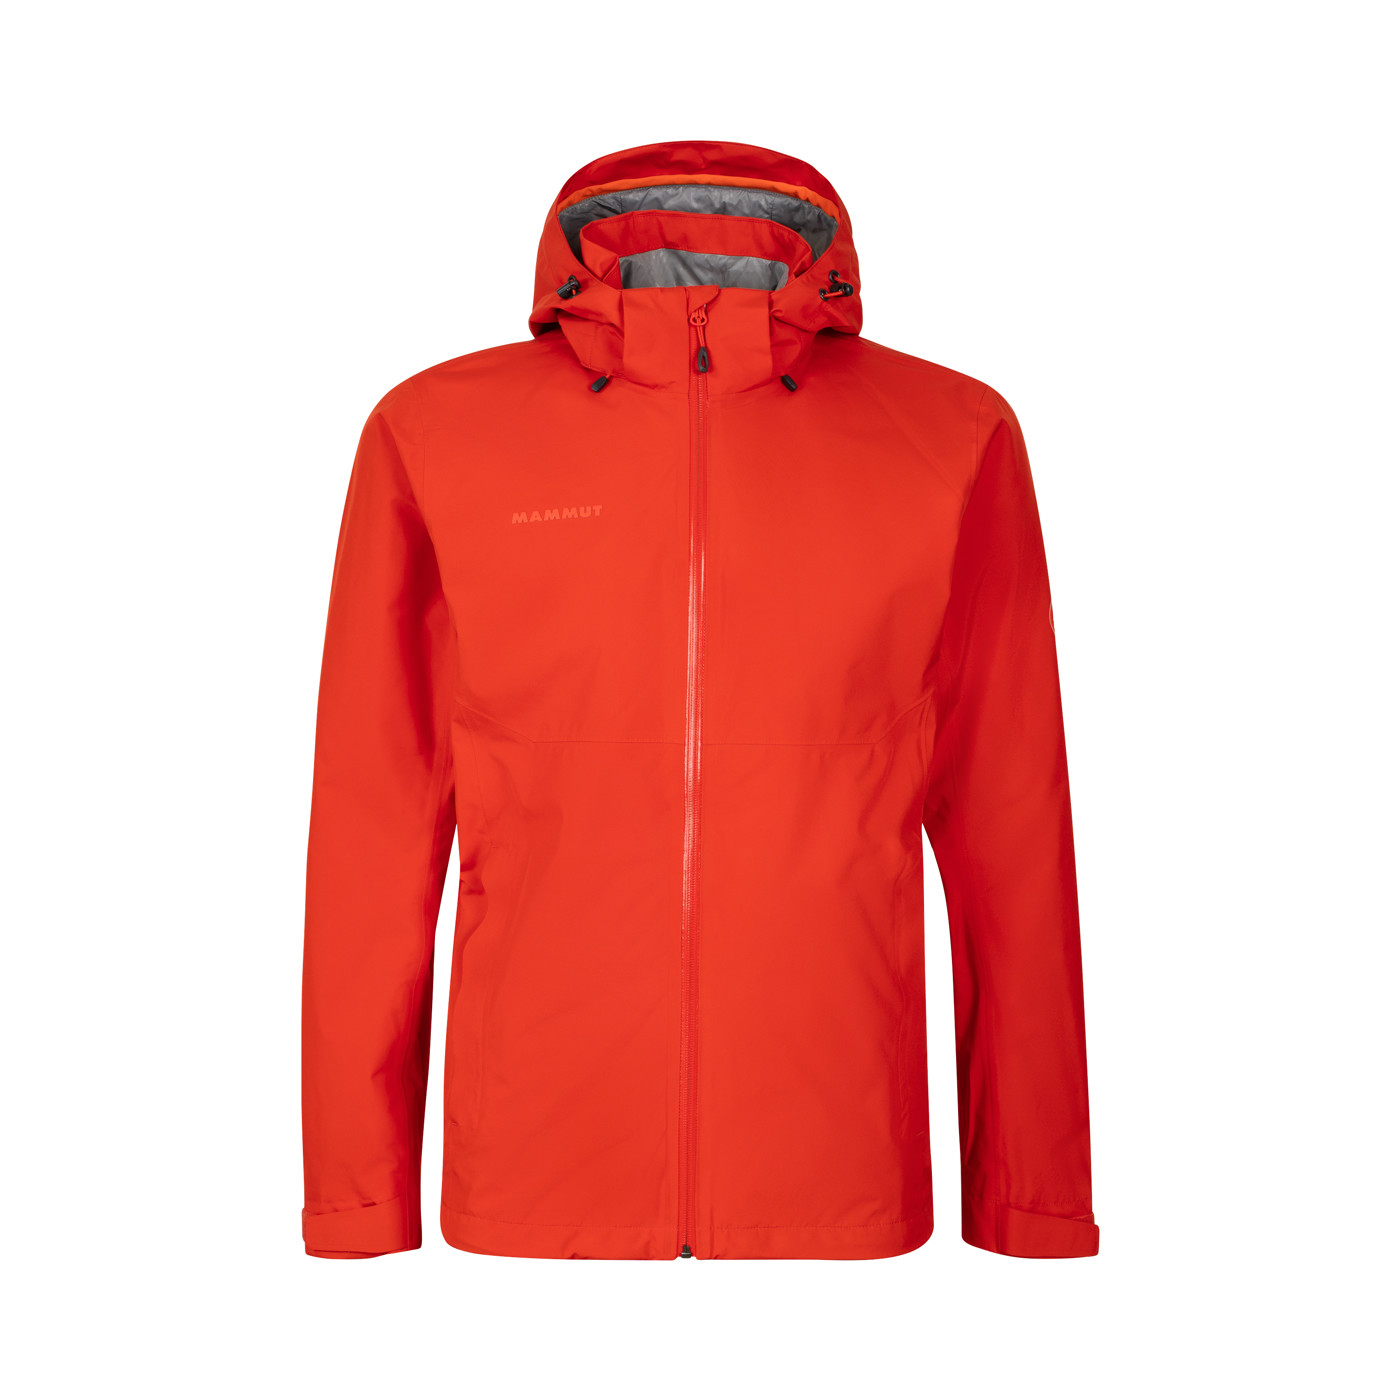 MAMMUT Ayako Tour HS Hooded Jacket Me - Herren